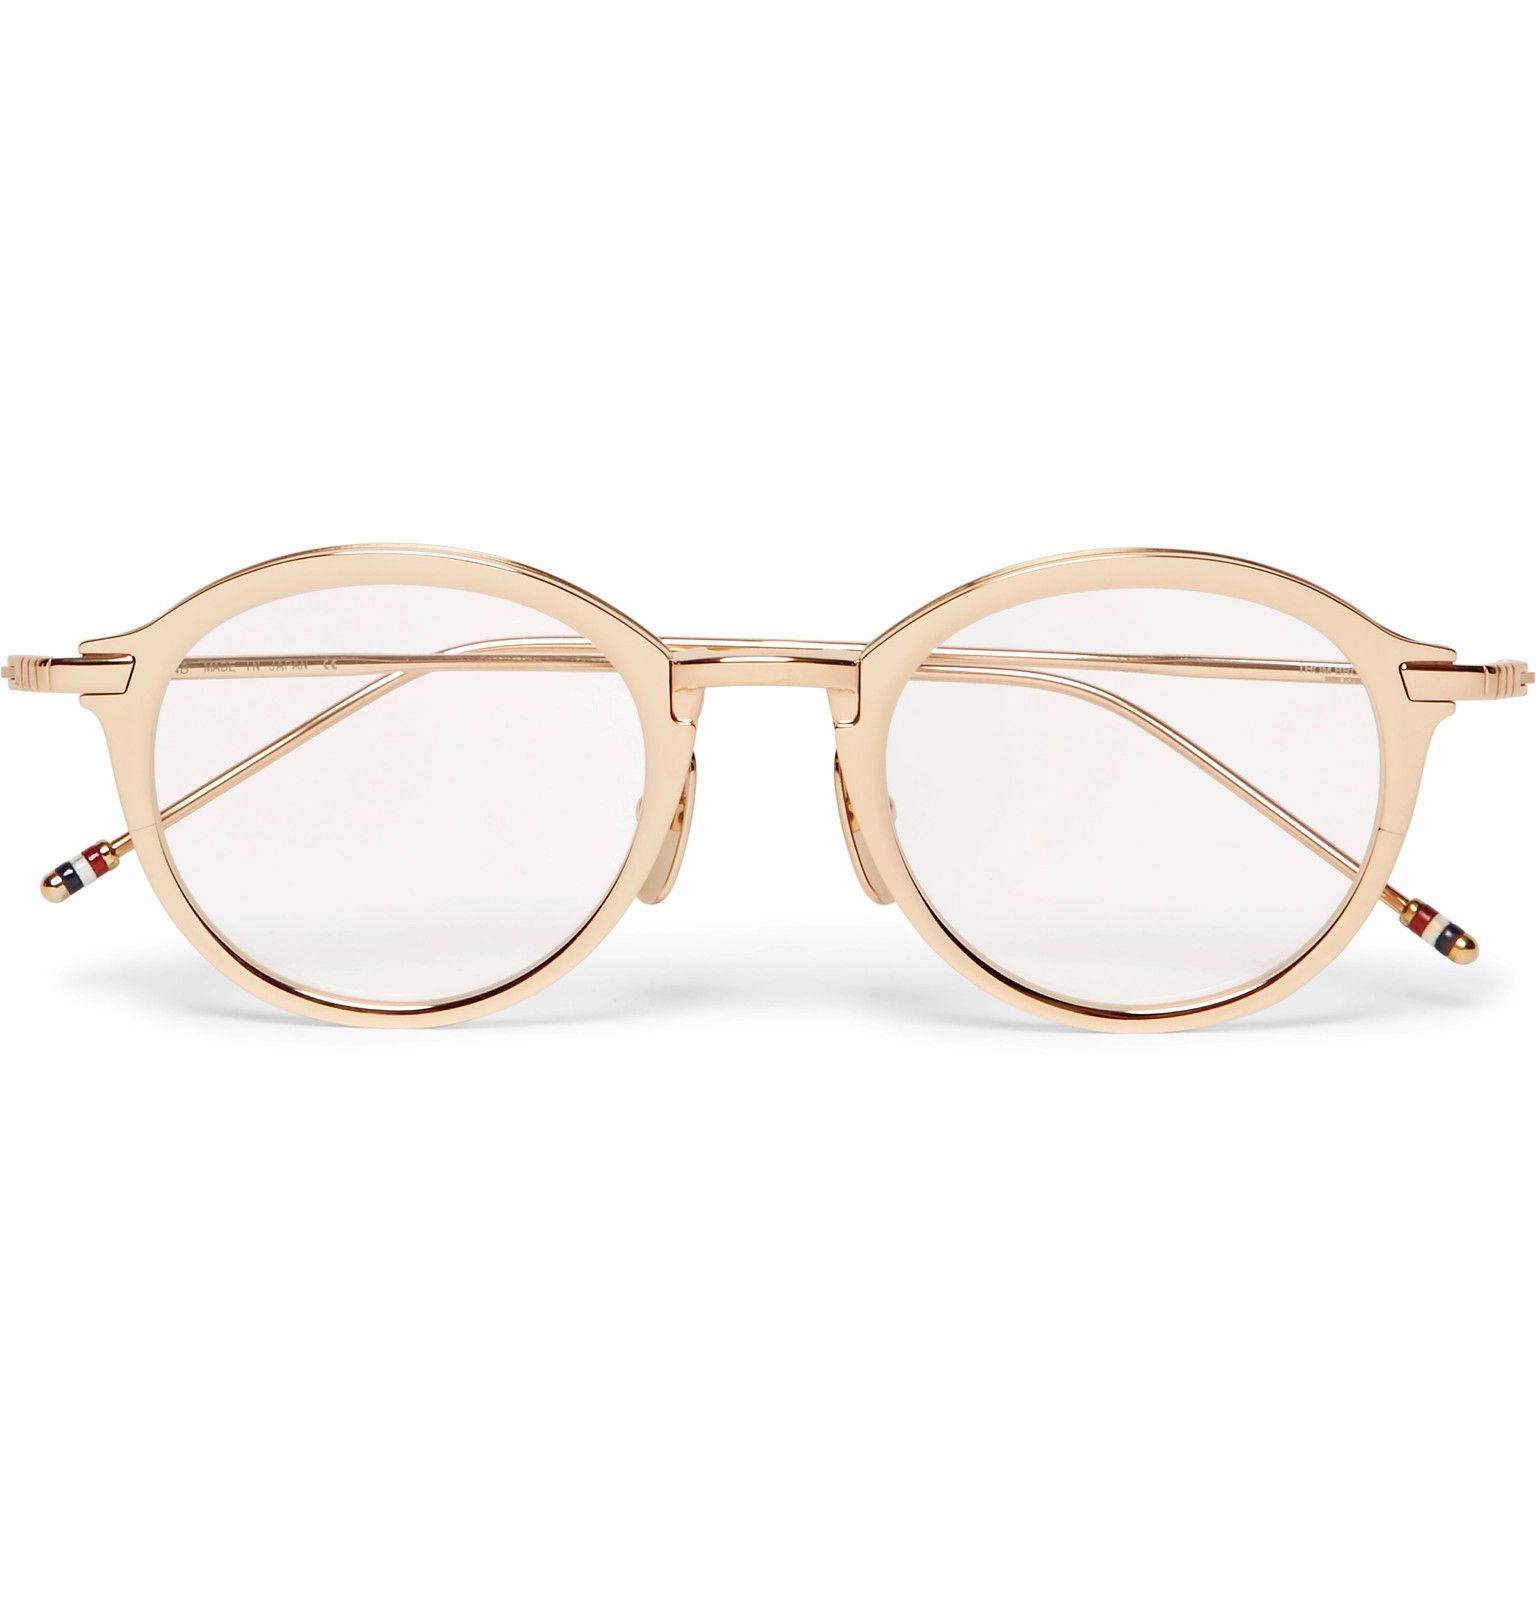 fdaa4bbf5f02 THOM BROWNE Round-Frame Gold-Tone Titanium Optical Glasses £725 Crafted in  Japan from gold-tone titanium